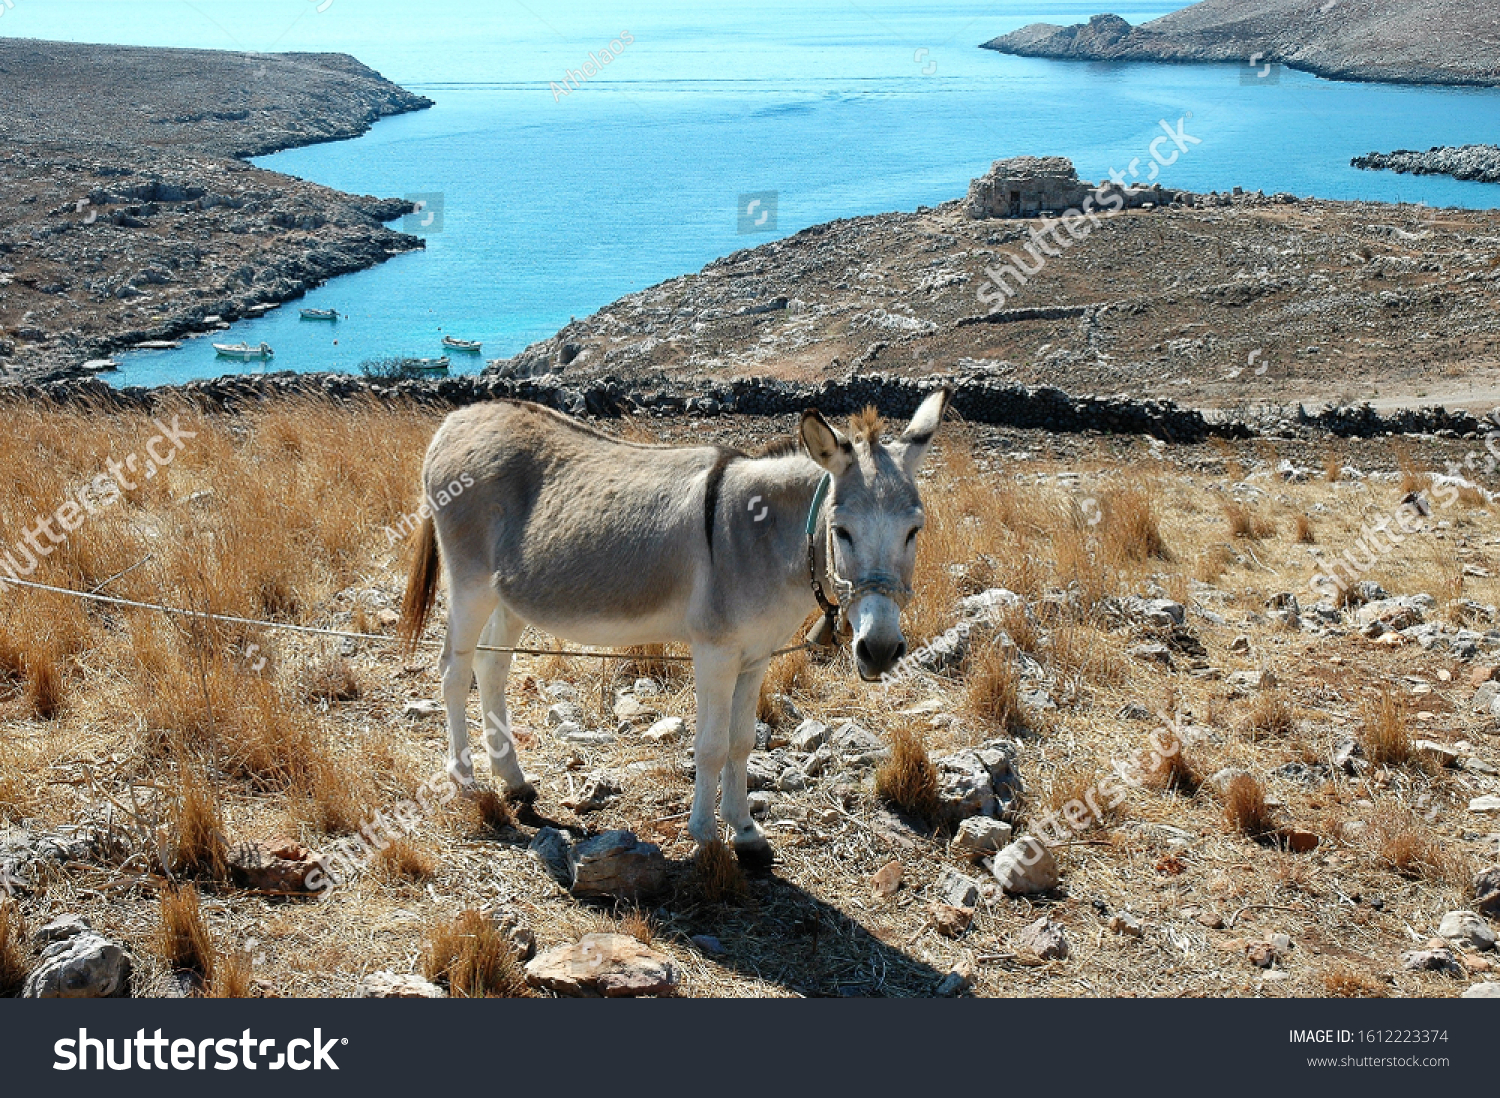 stock-photo-a-donkey-in-a-field-near-a-g